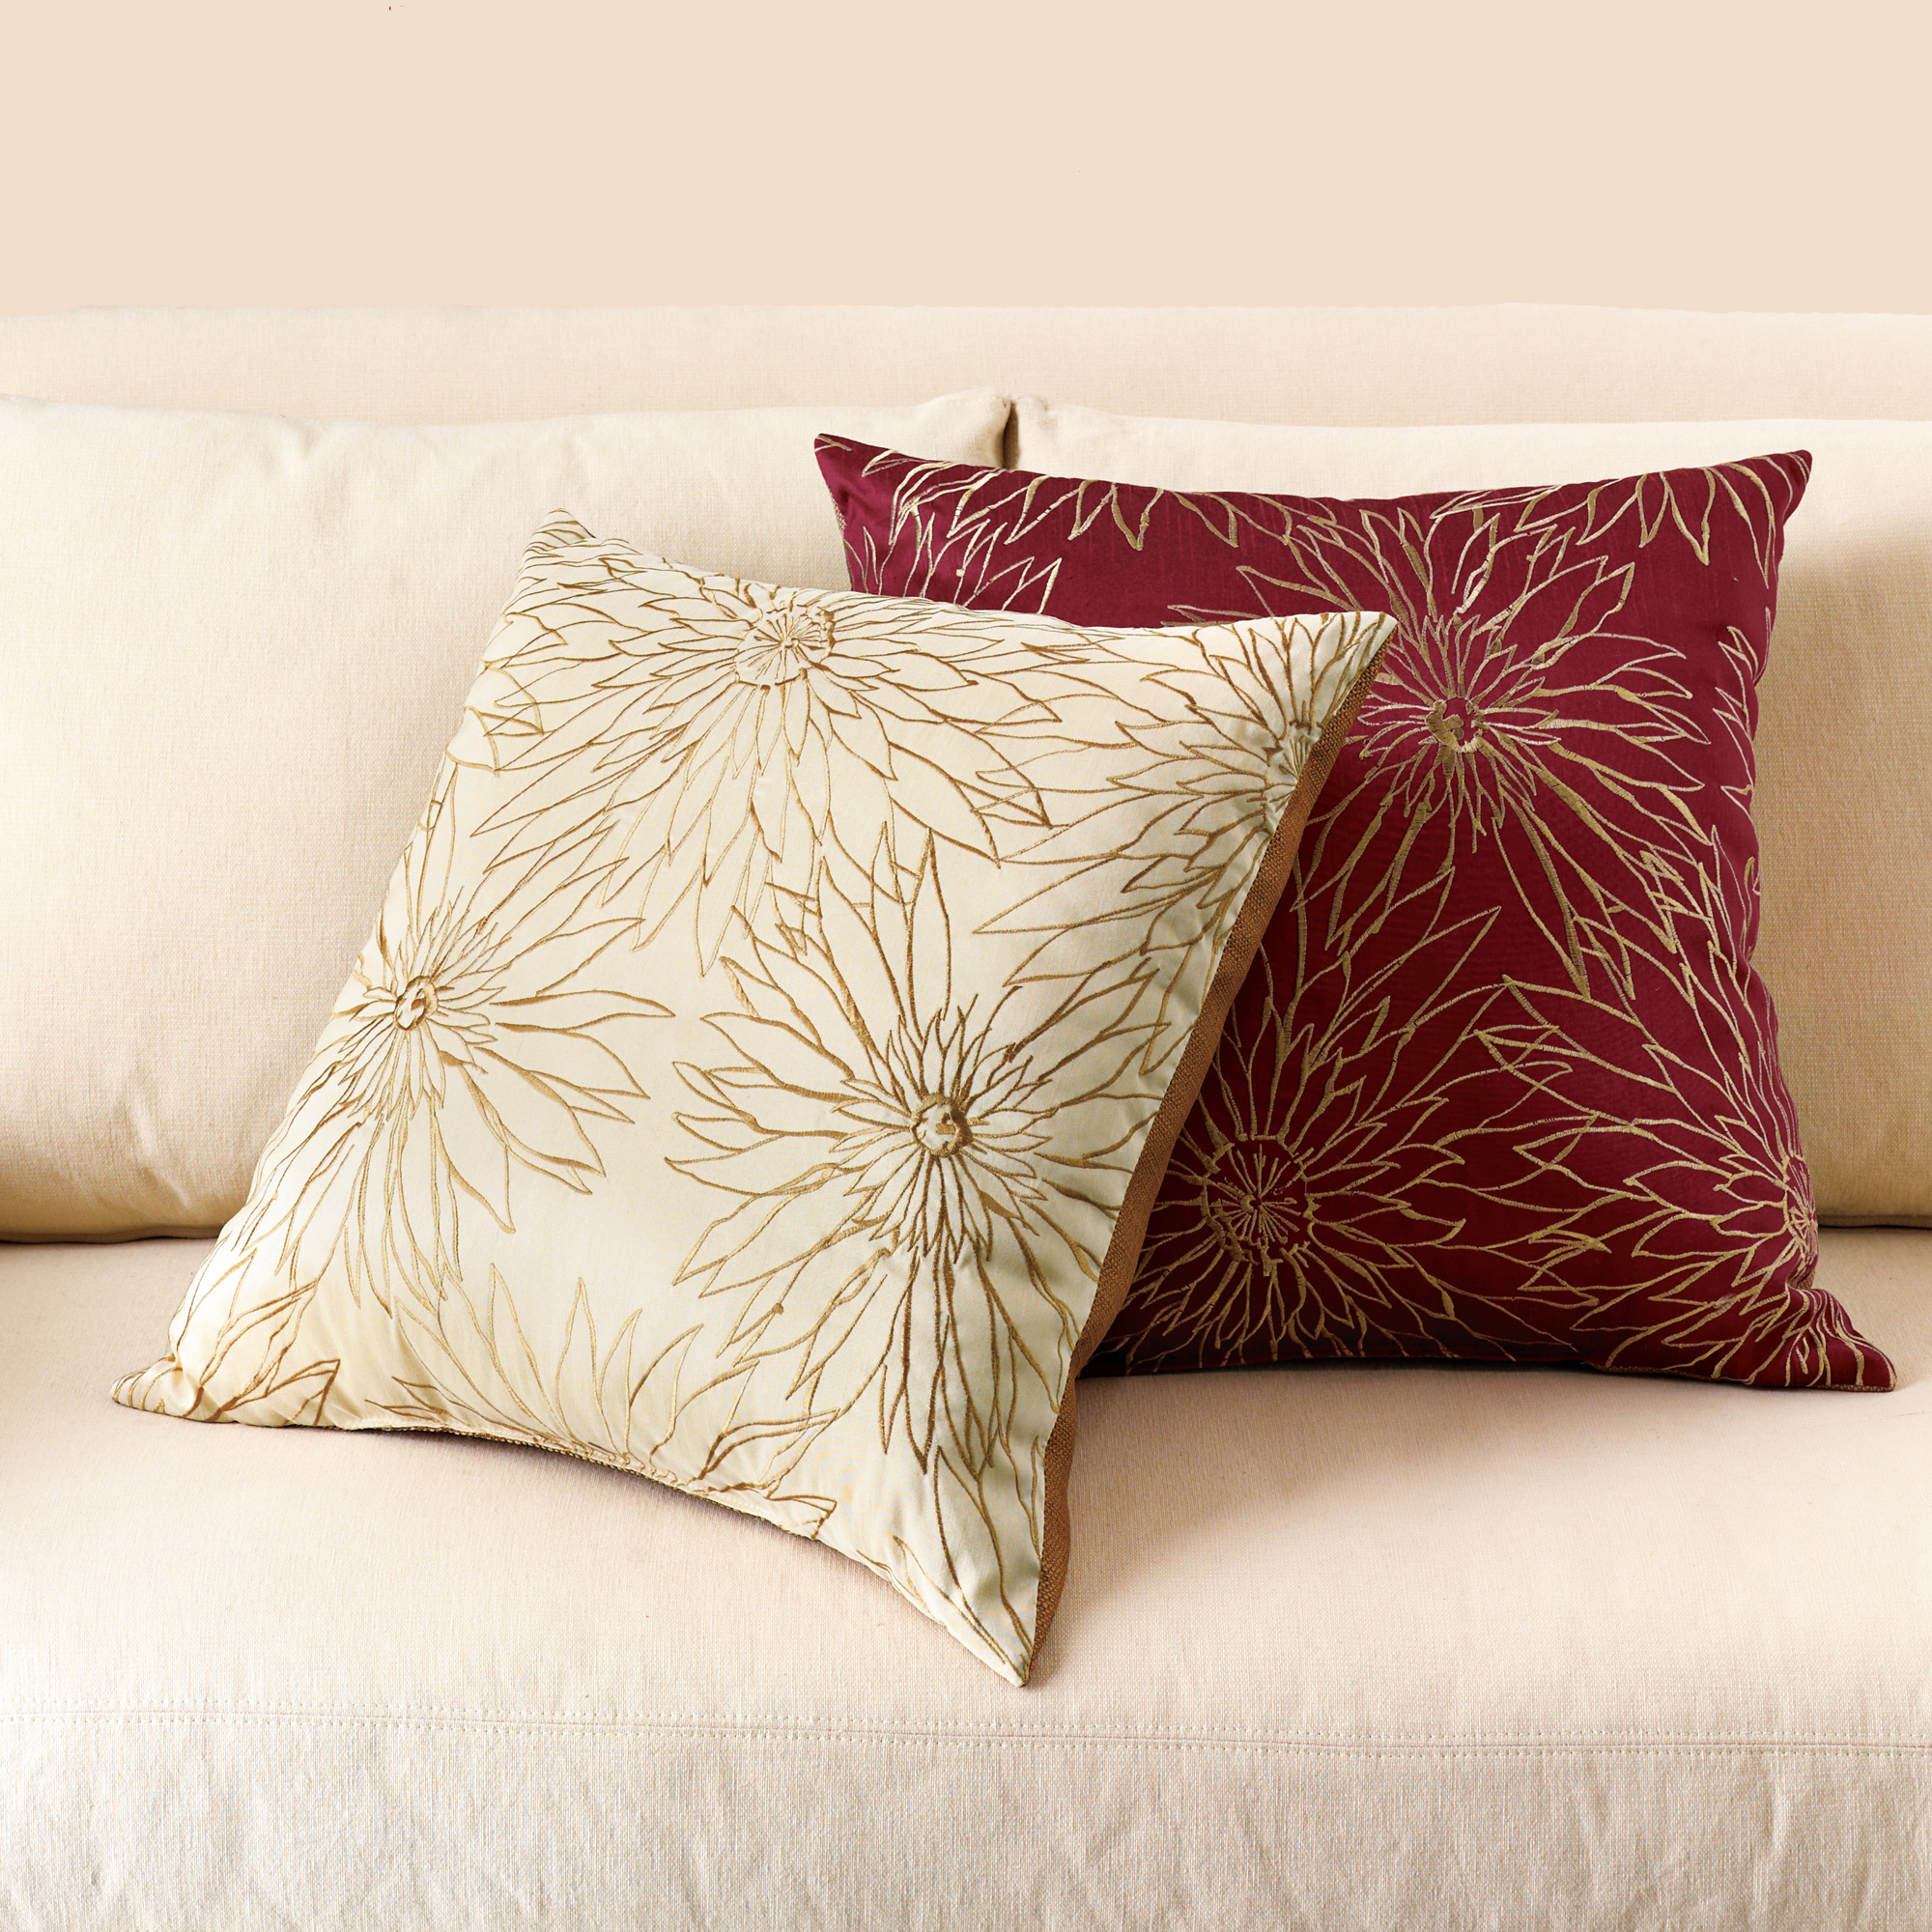 Dahlia Pillows